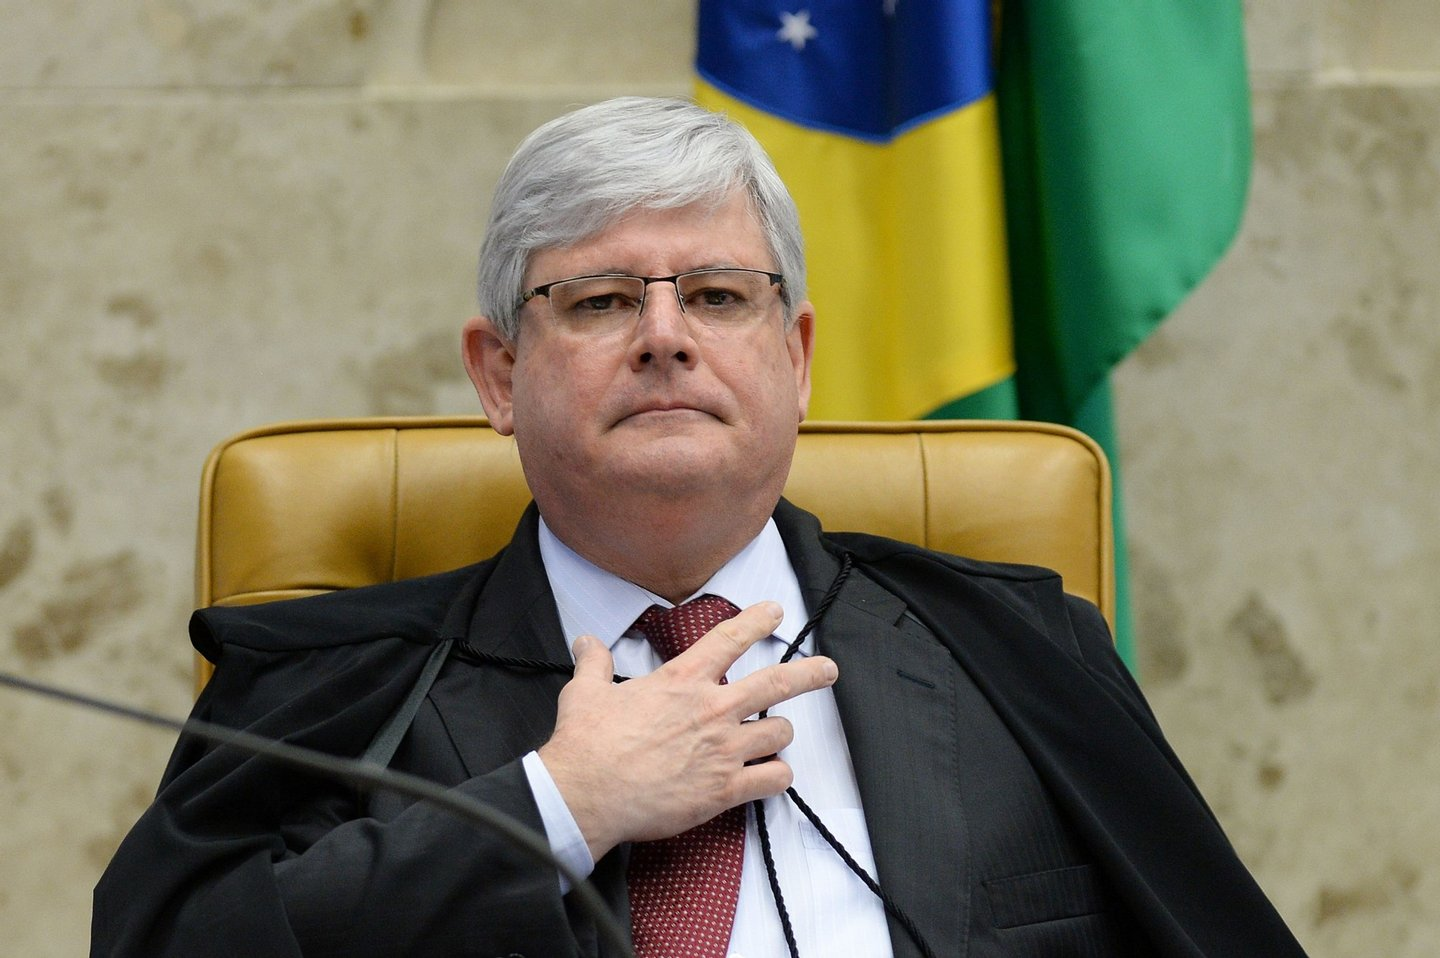 Brazil's Attorney General Rodrigo Janot, during a session of the Federal Supreme Court (STF) in Brasilia on April 20, 2016. Brazil's Supreme Court on Wednesday postponed a decision on whether to authorize the controversial appointment of former leader Luiz Inacio Lula da Silva to the embattled government of his protegee, President Dilma Rousseff. / AFP / ANDRESSA ANHOLETE (Photo credit should read ANDRESSA ANHOLETE/AFP/Getty Images)